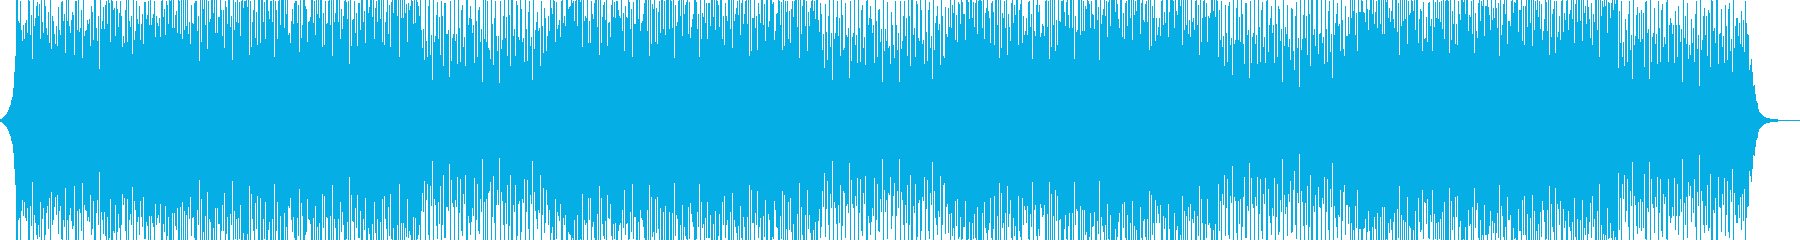 Corporate VP, warm, IT's reproduced waveform